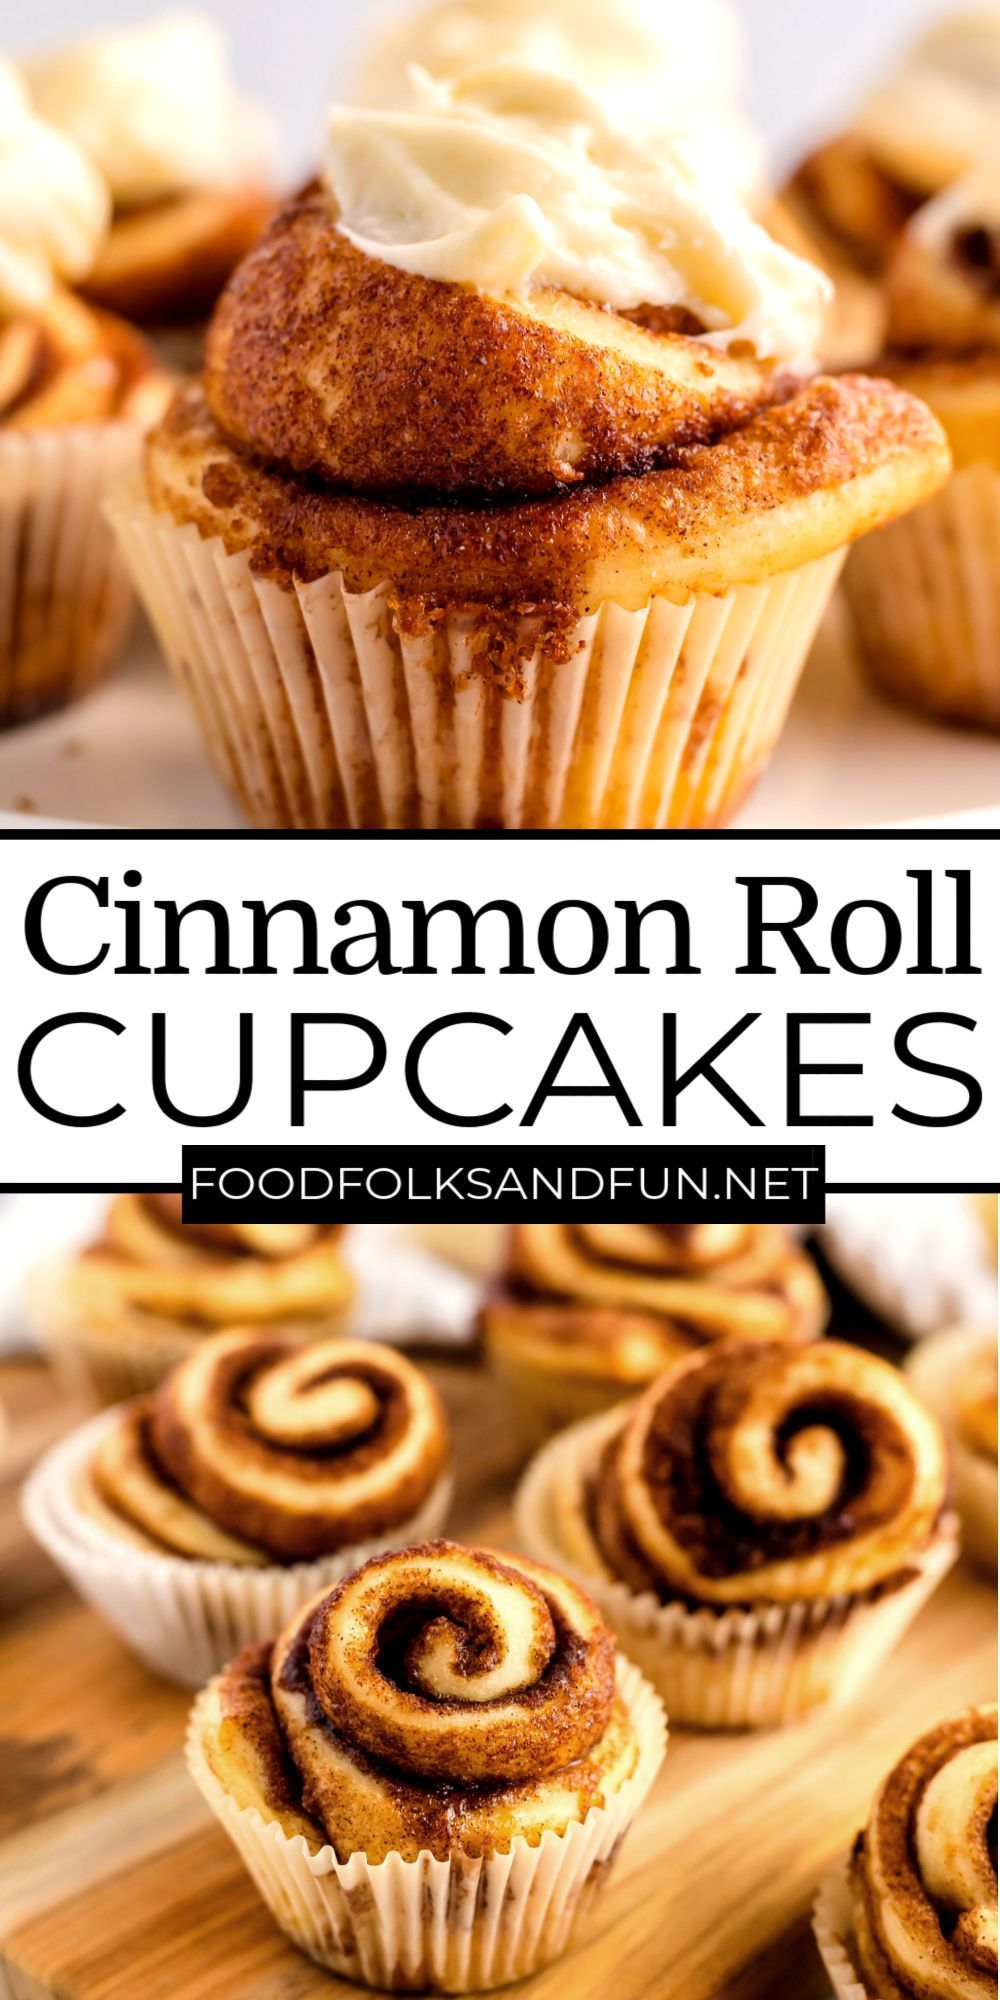 These Cinnamon Roll Cupcakes are perfect for breakfast, brunch, or even for birthday breakfasts! For more easy breakfast ideas follow Food Folks and Fun!